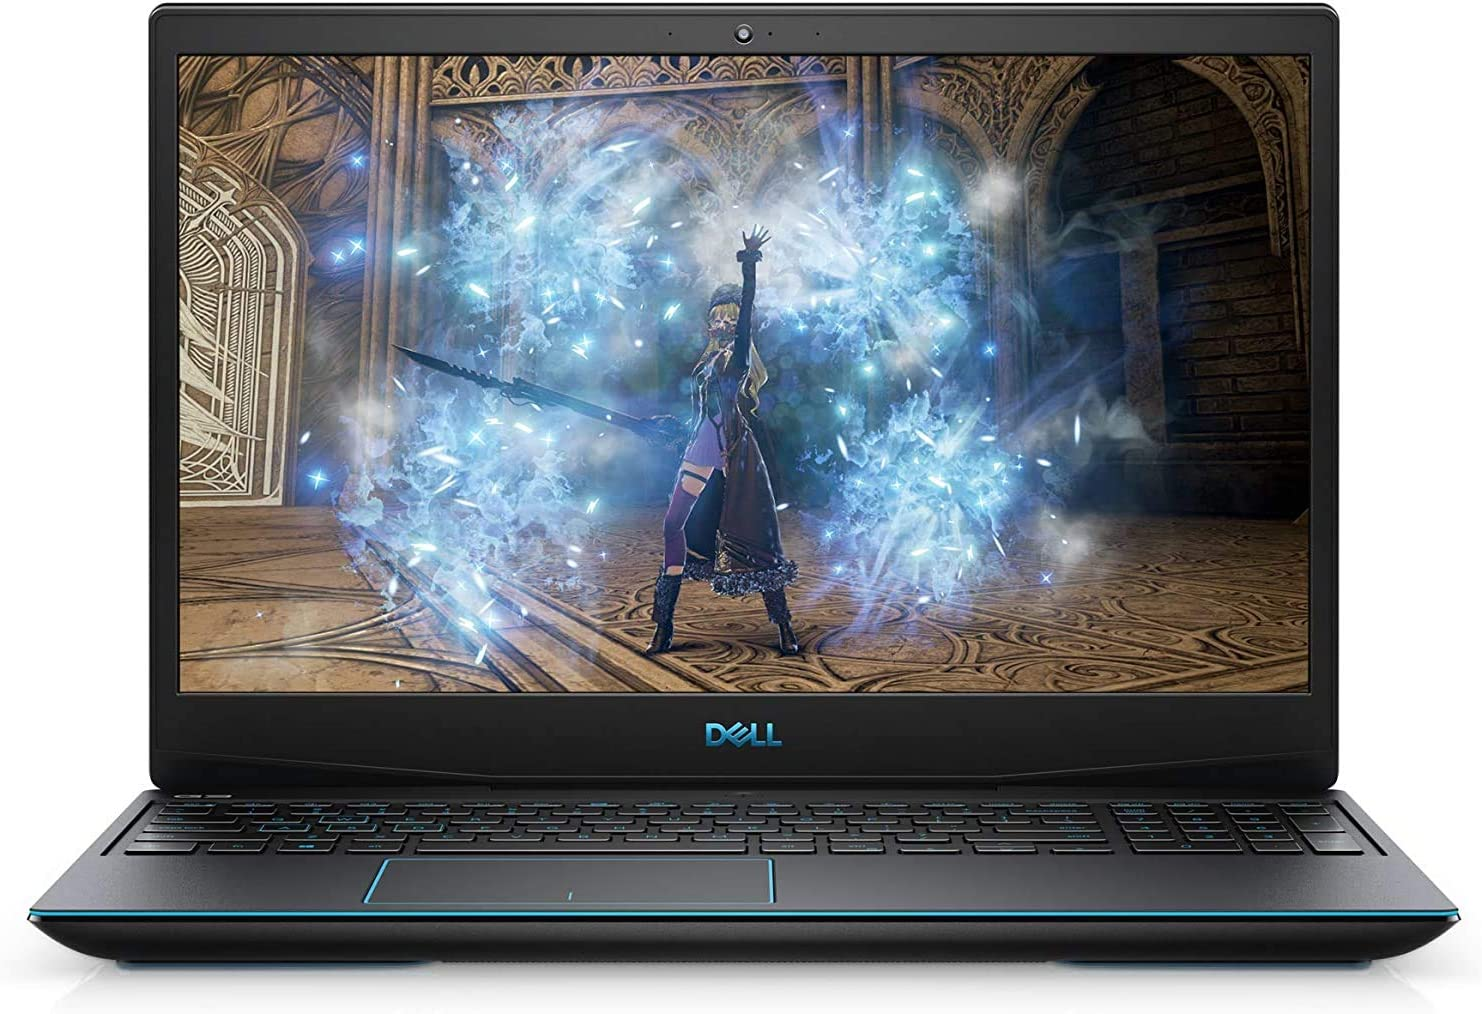 "Dell G3 15 15.6"" FHD (1920x1080) 220nits Anti-Glare Gaming Laptop, Intel Core i5-10300H up to 4.5GHz, 16GB RAM, 1TB HDD+256GB SSD, NVIDIA GTX 1650 (4GB GDDR6), HDMI, Backlit Keyboard, Windows 10"